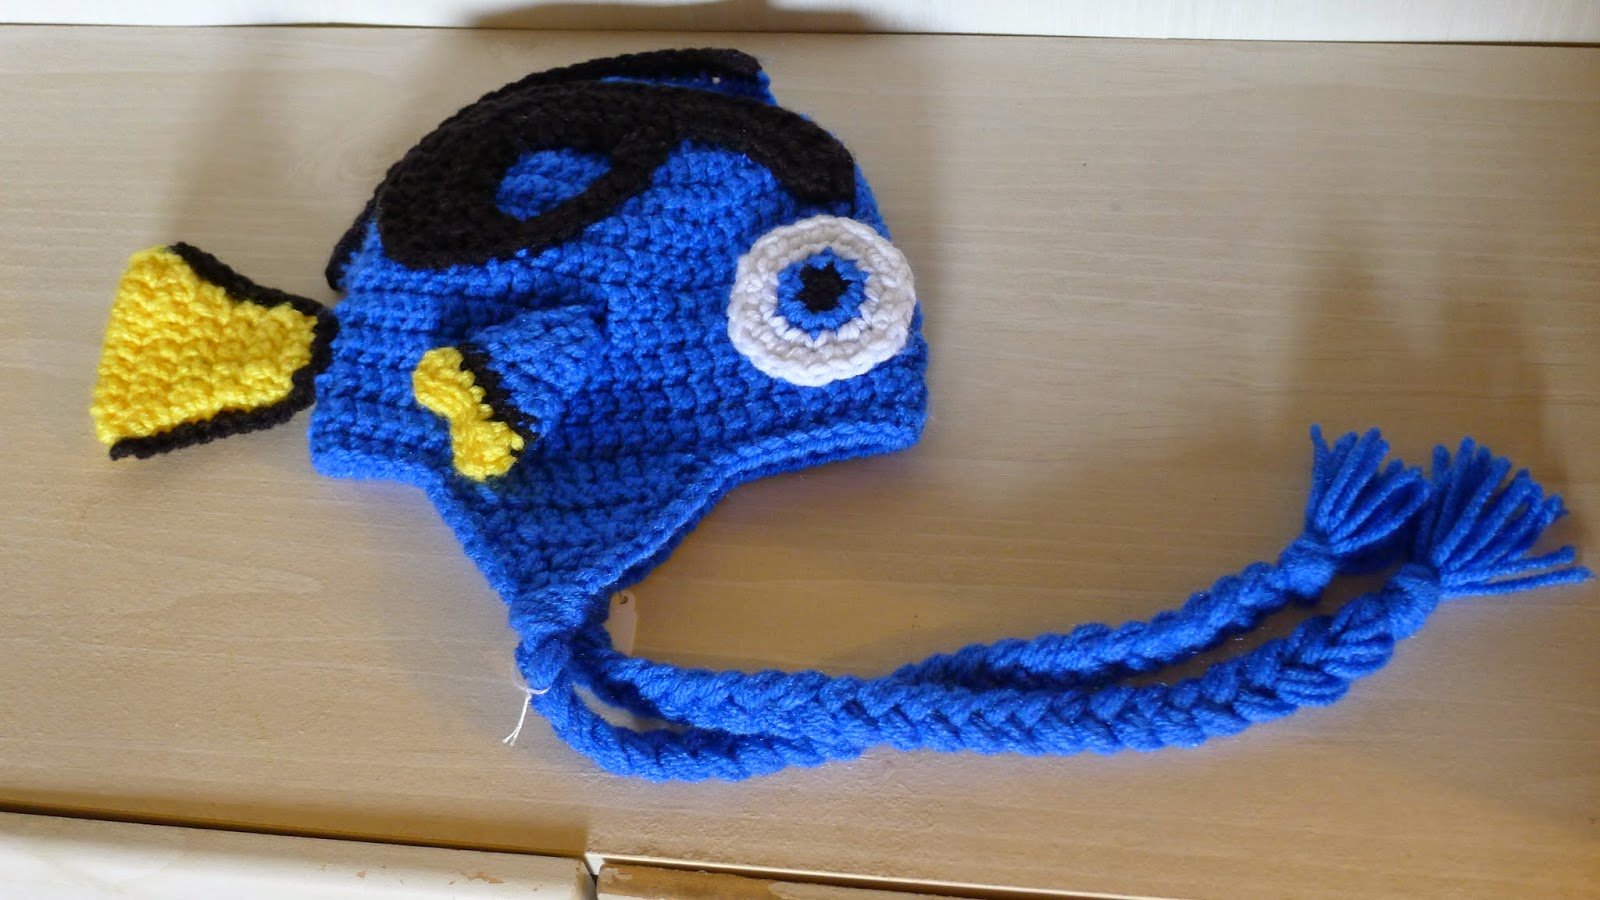 mnopxs2 the blog: Crochet Blue Tang Hat